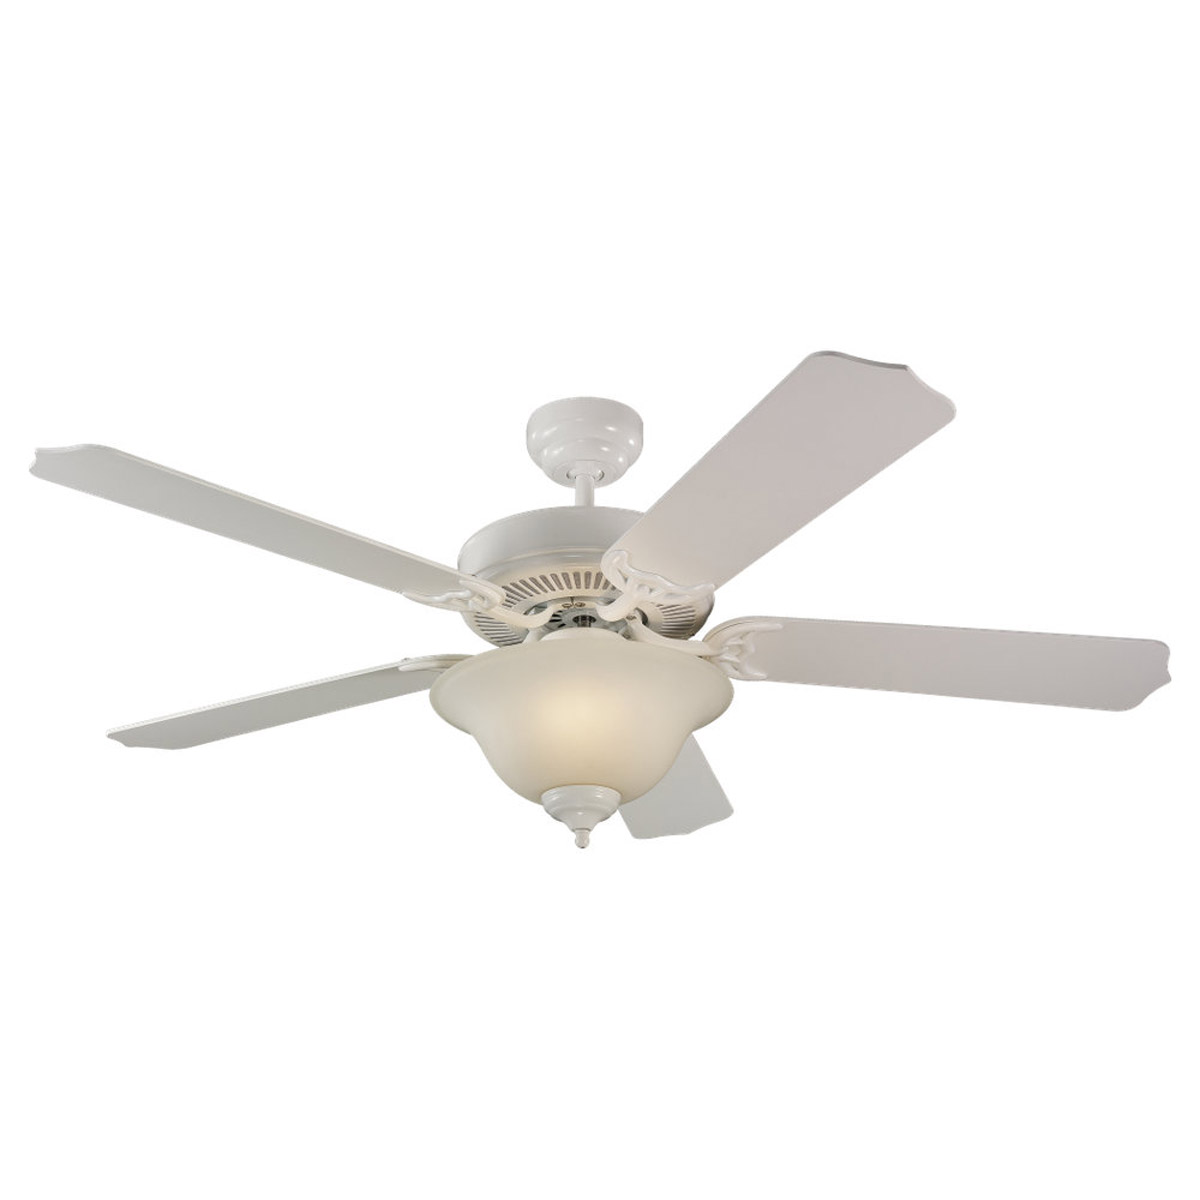 Sea Gull Lighting 2 Light 52in 5 Blade Fan, with Bowl Light, in White 15030BLE-15 photo